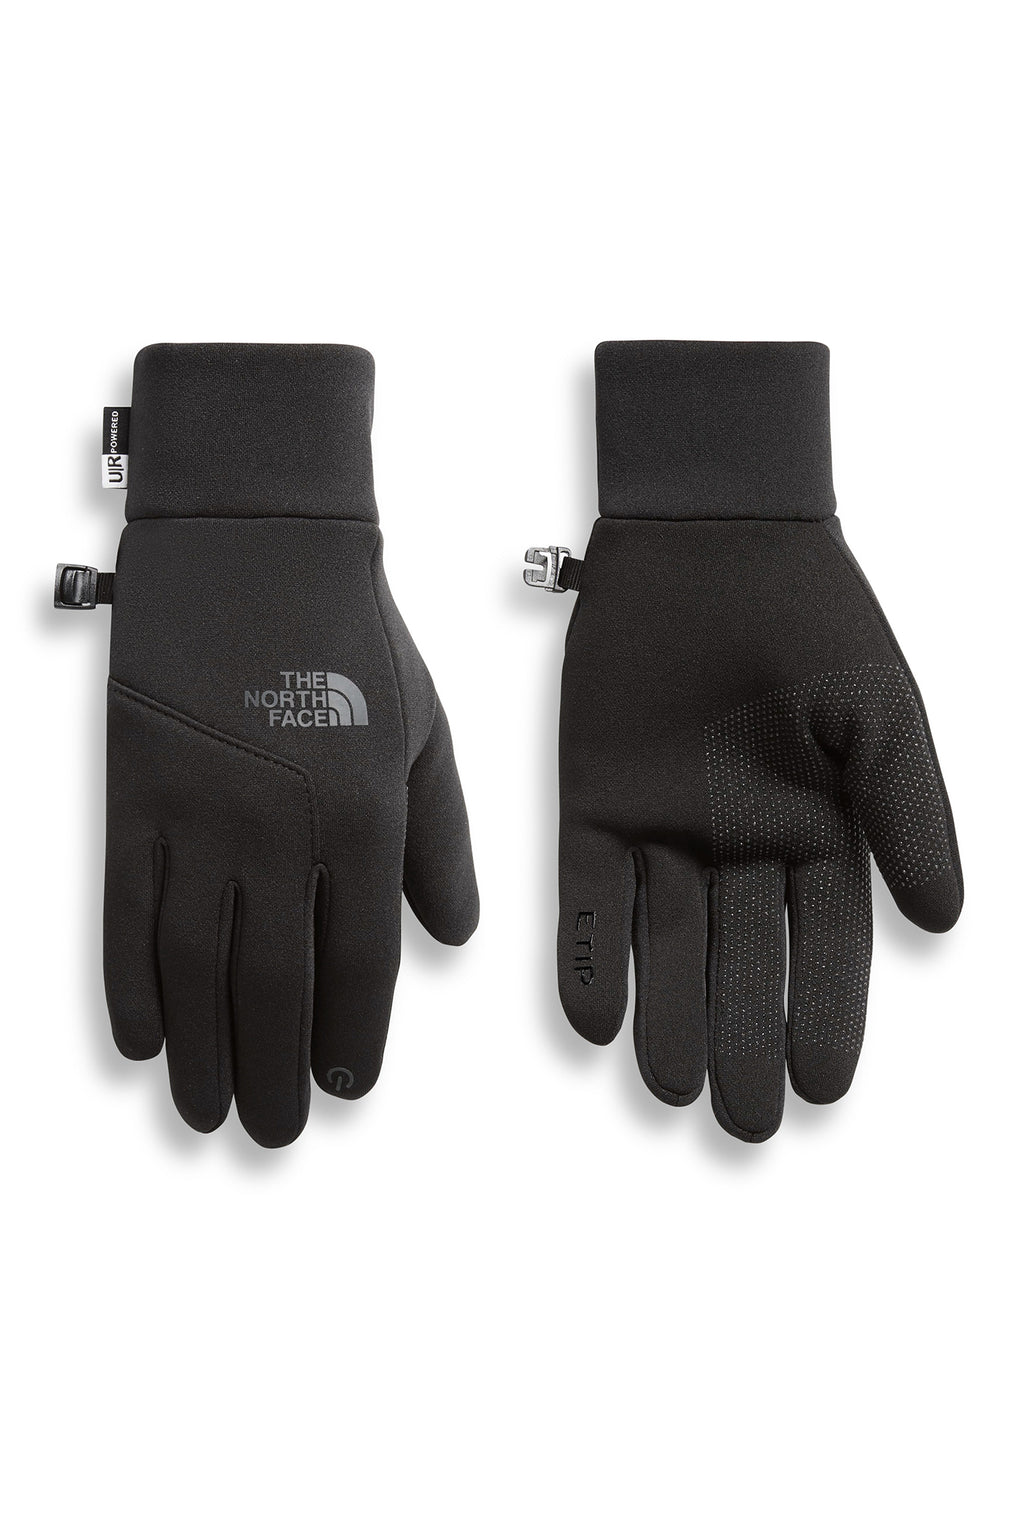 The North Face E Tip Glove